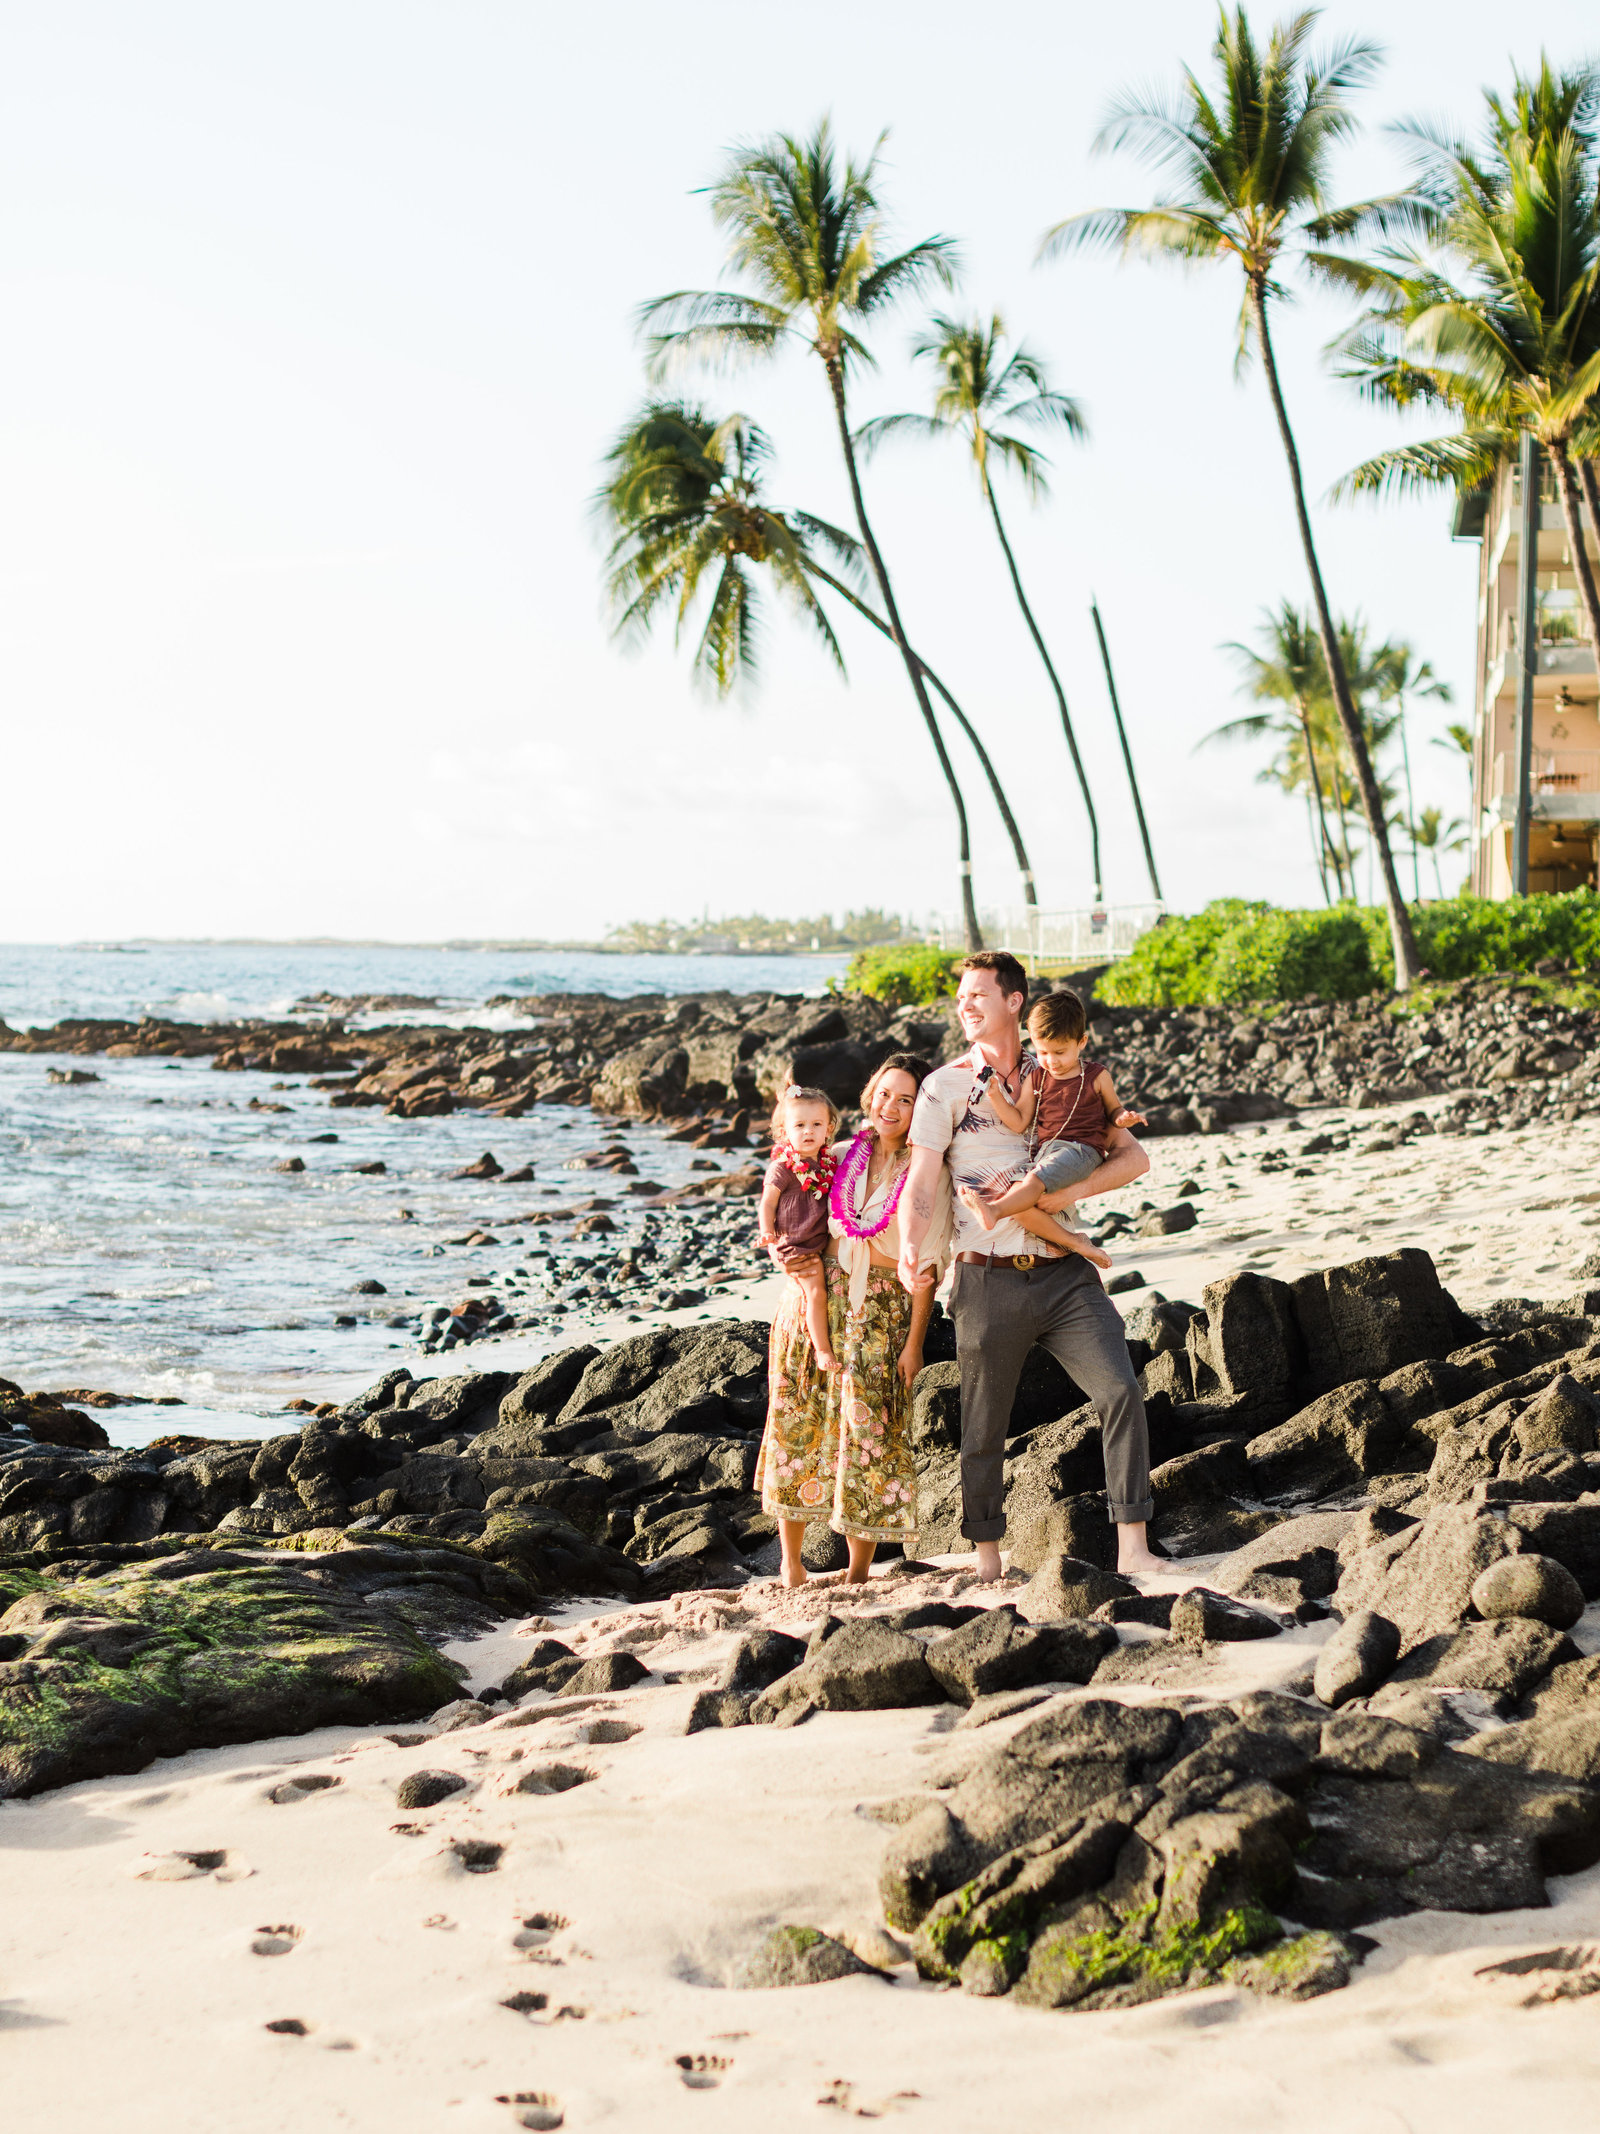 Young couple hold their two young kids on a beach in Hawaii, surrounded by lava rocks and palm trees